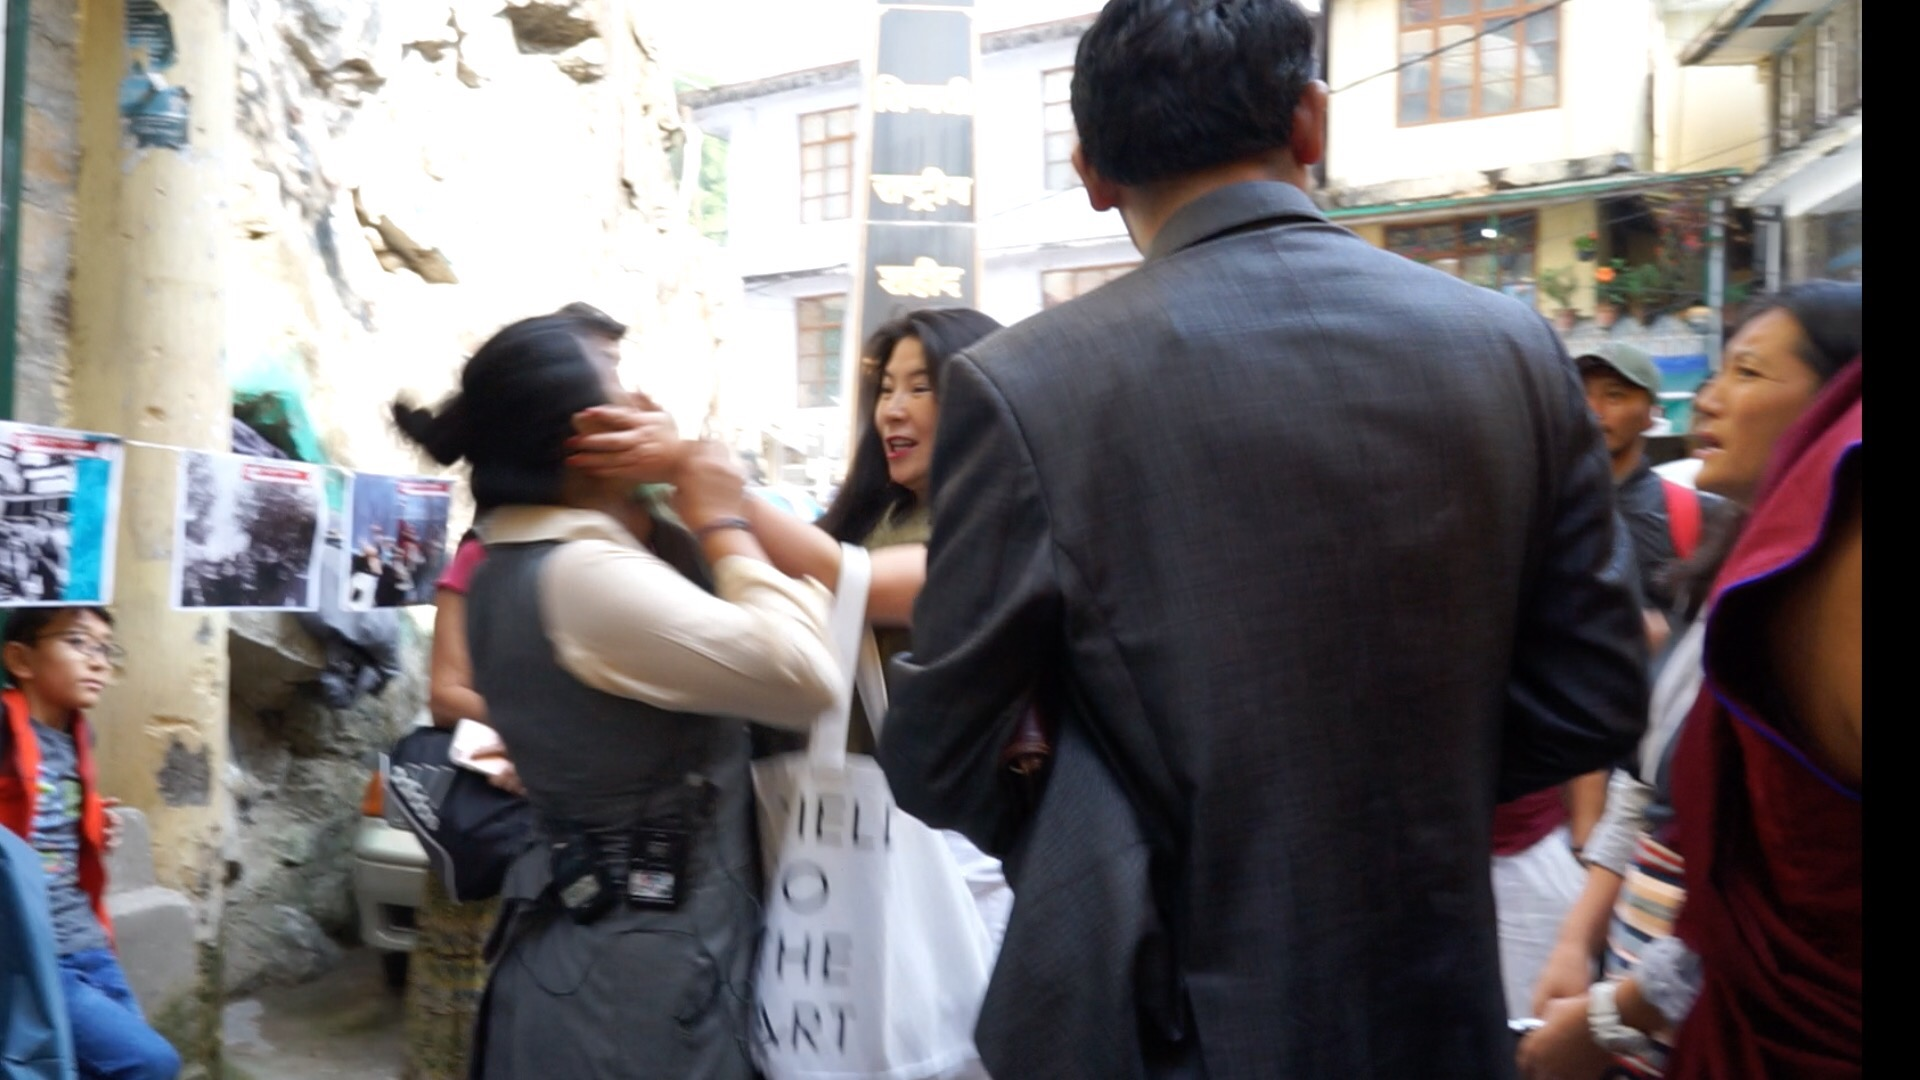 Wen Qi Zhu, a Chinese American woman seen grabbing Lhagyari Namgyal Dolkar by her head. (Photo courtesy: phayul.com)